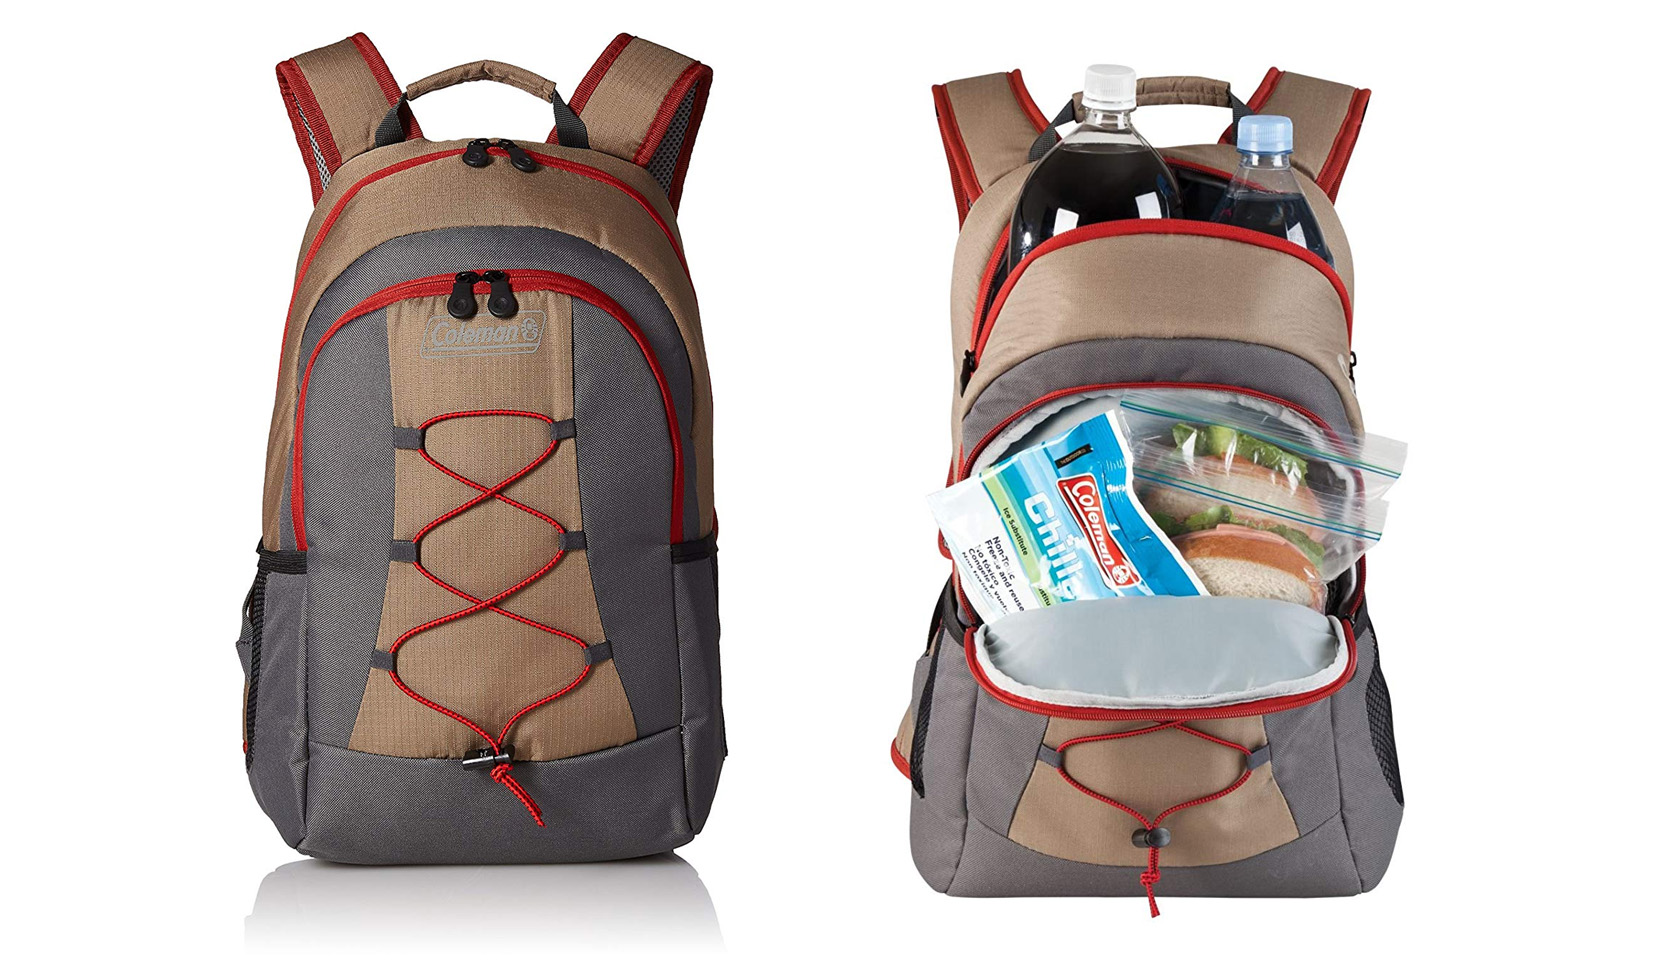 Coleman's Soft Cooler Backpack drops to $20 Prime shipped & is perfect for all of your picnics